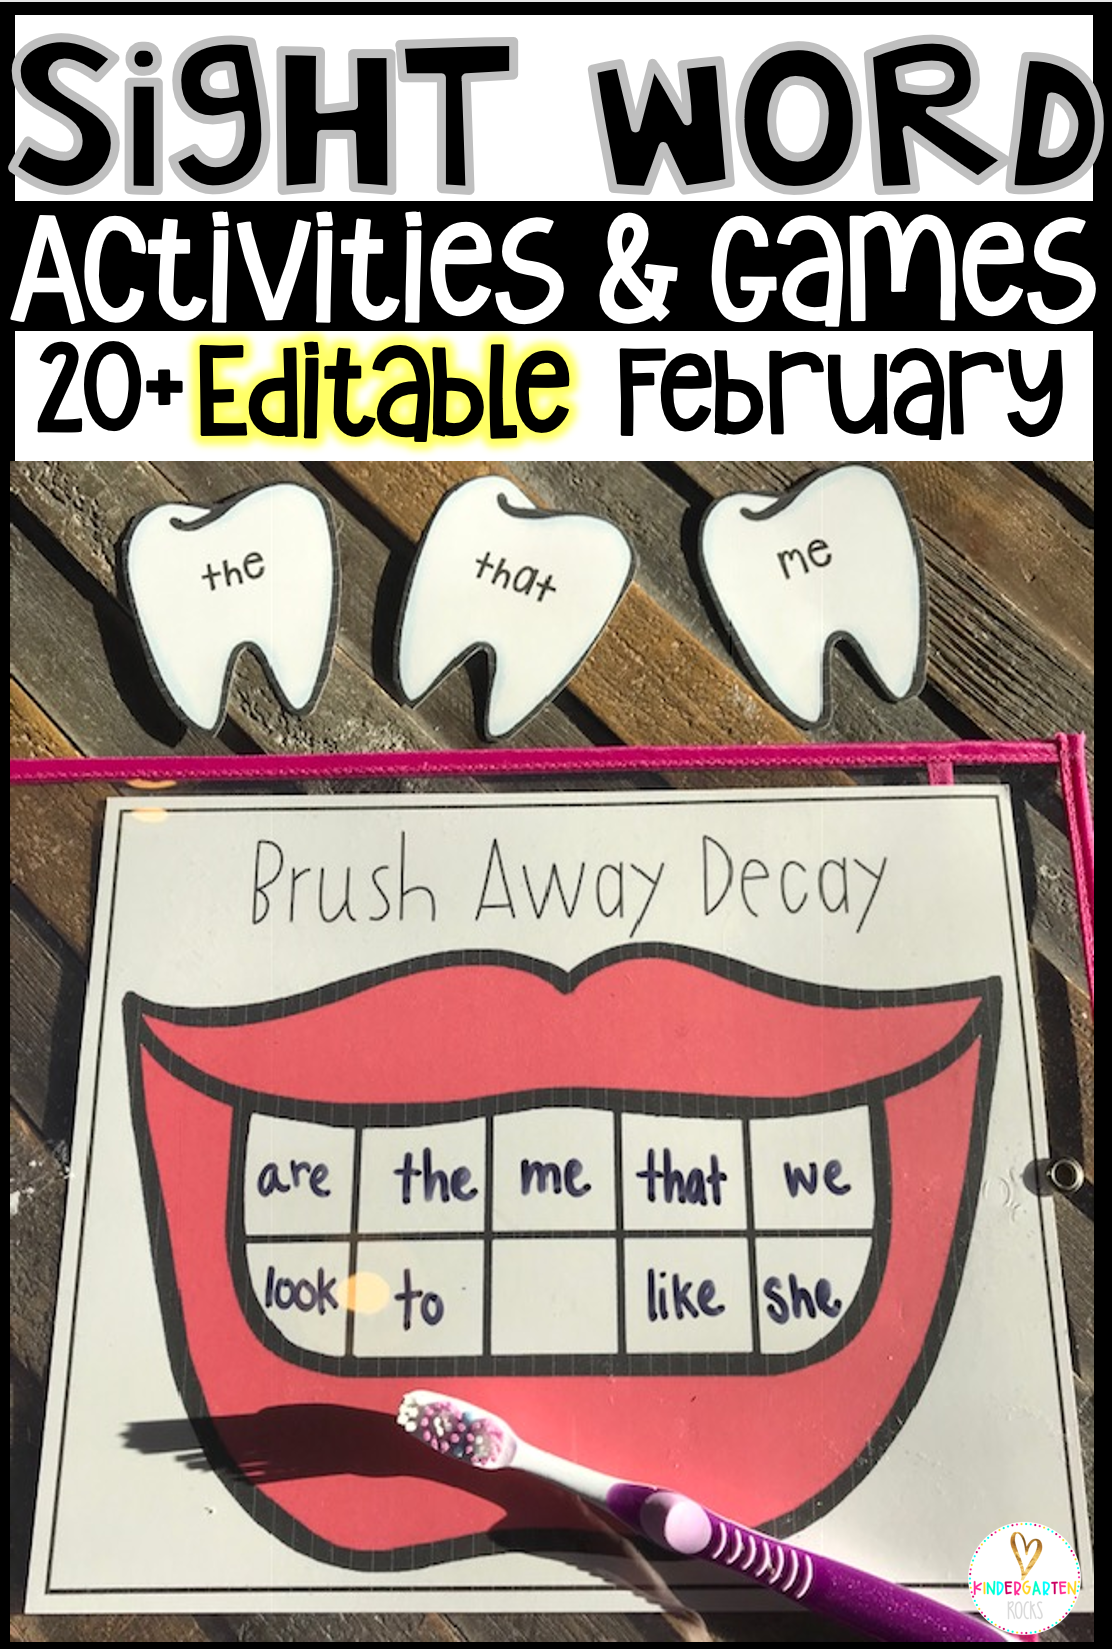 Valentine S Day Sight Word Games And Activities Editable February